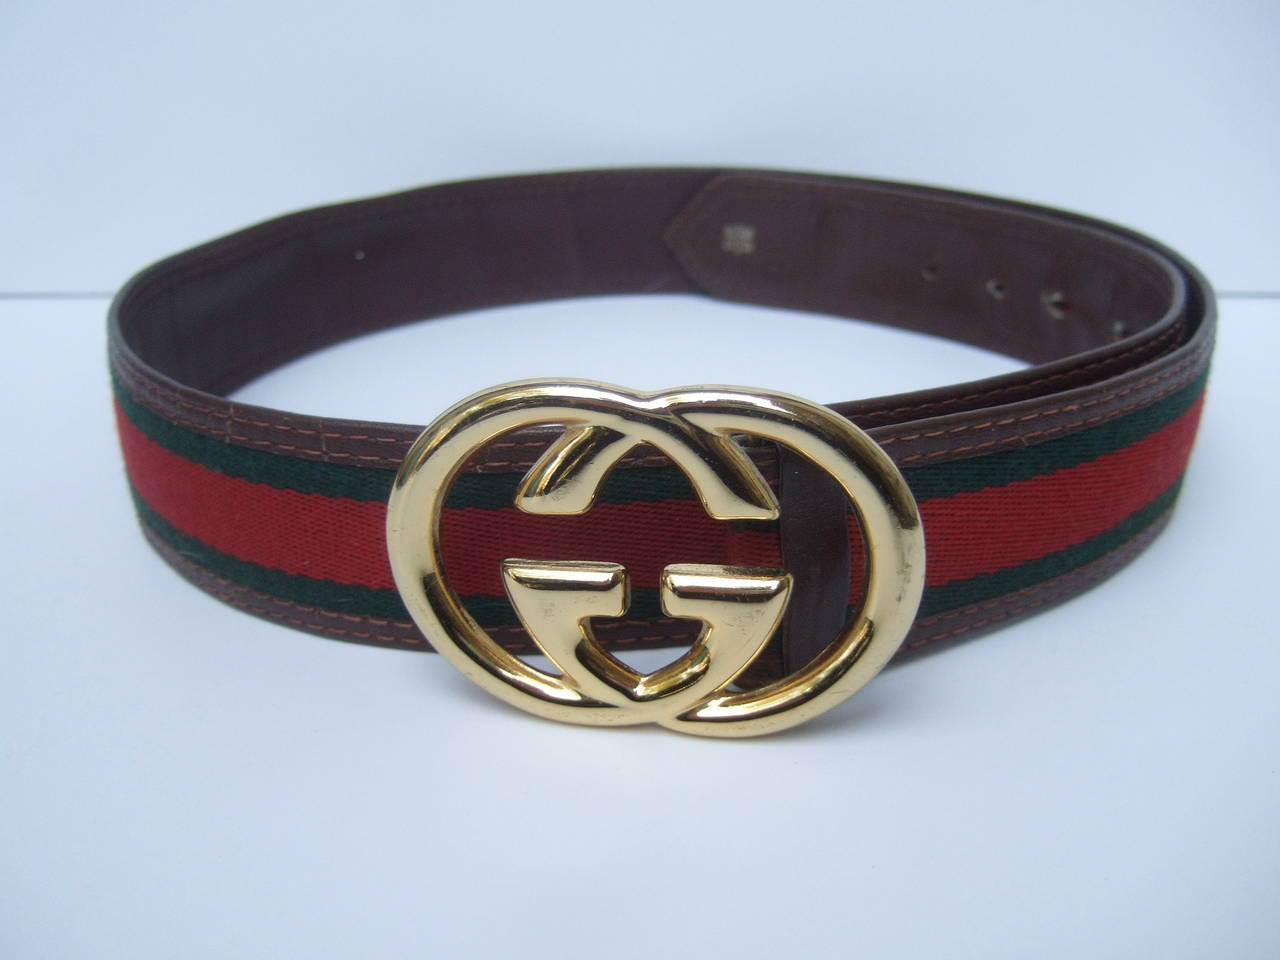 7c0798eff Gucci Sleek Gilt Buckle Red & Green Striped Belt c 1980s In Excellent  Condition For Sale